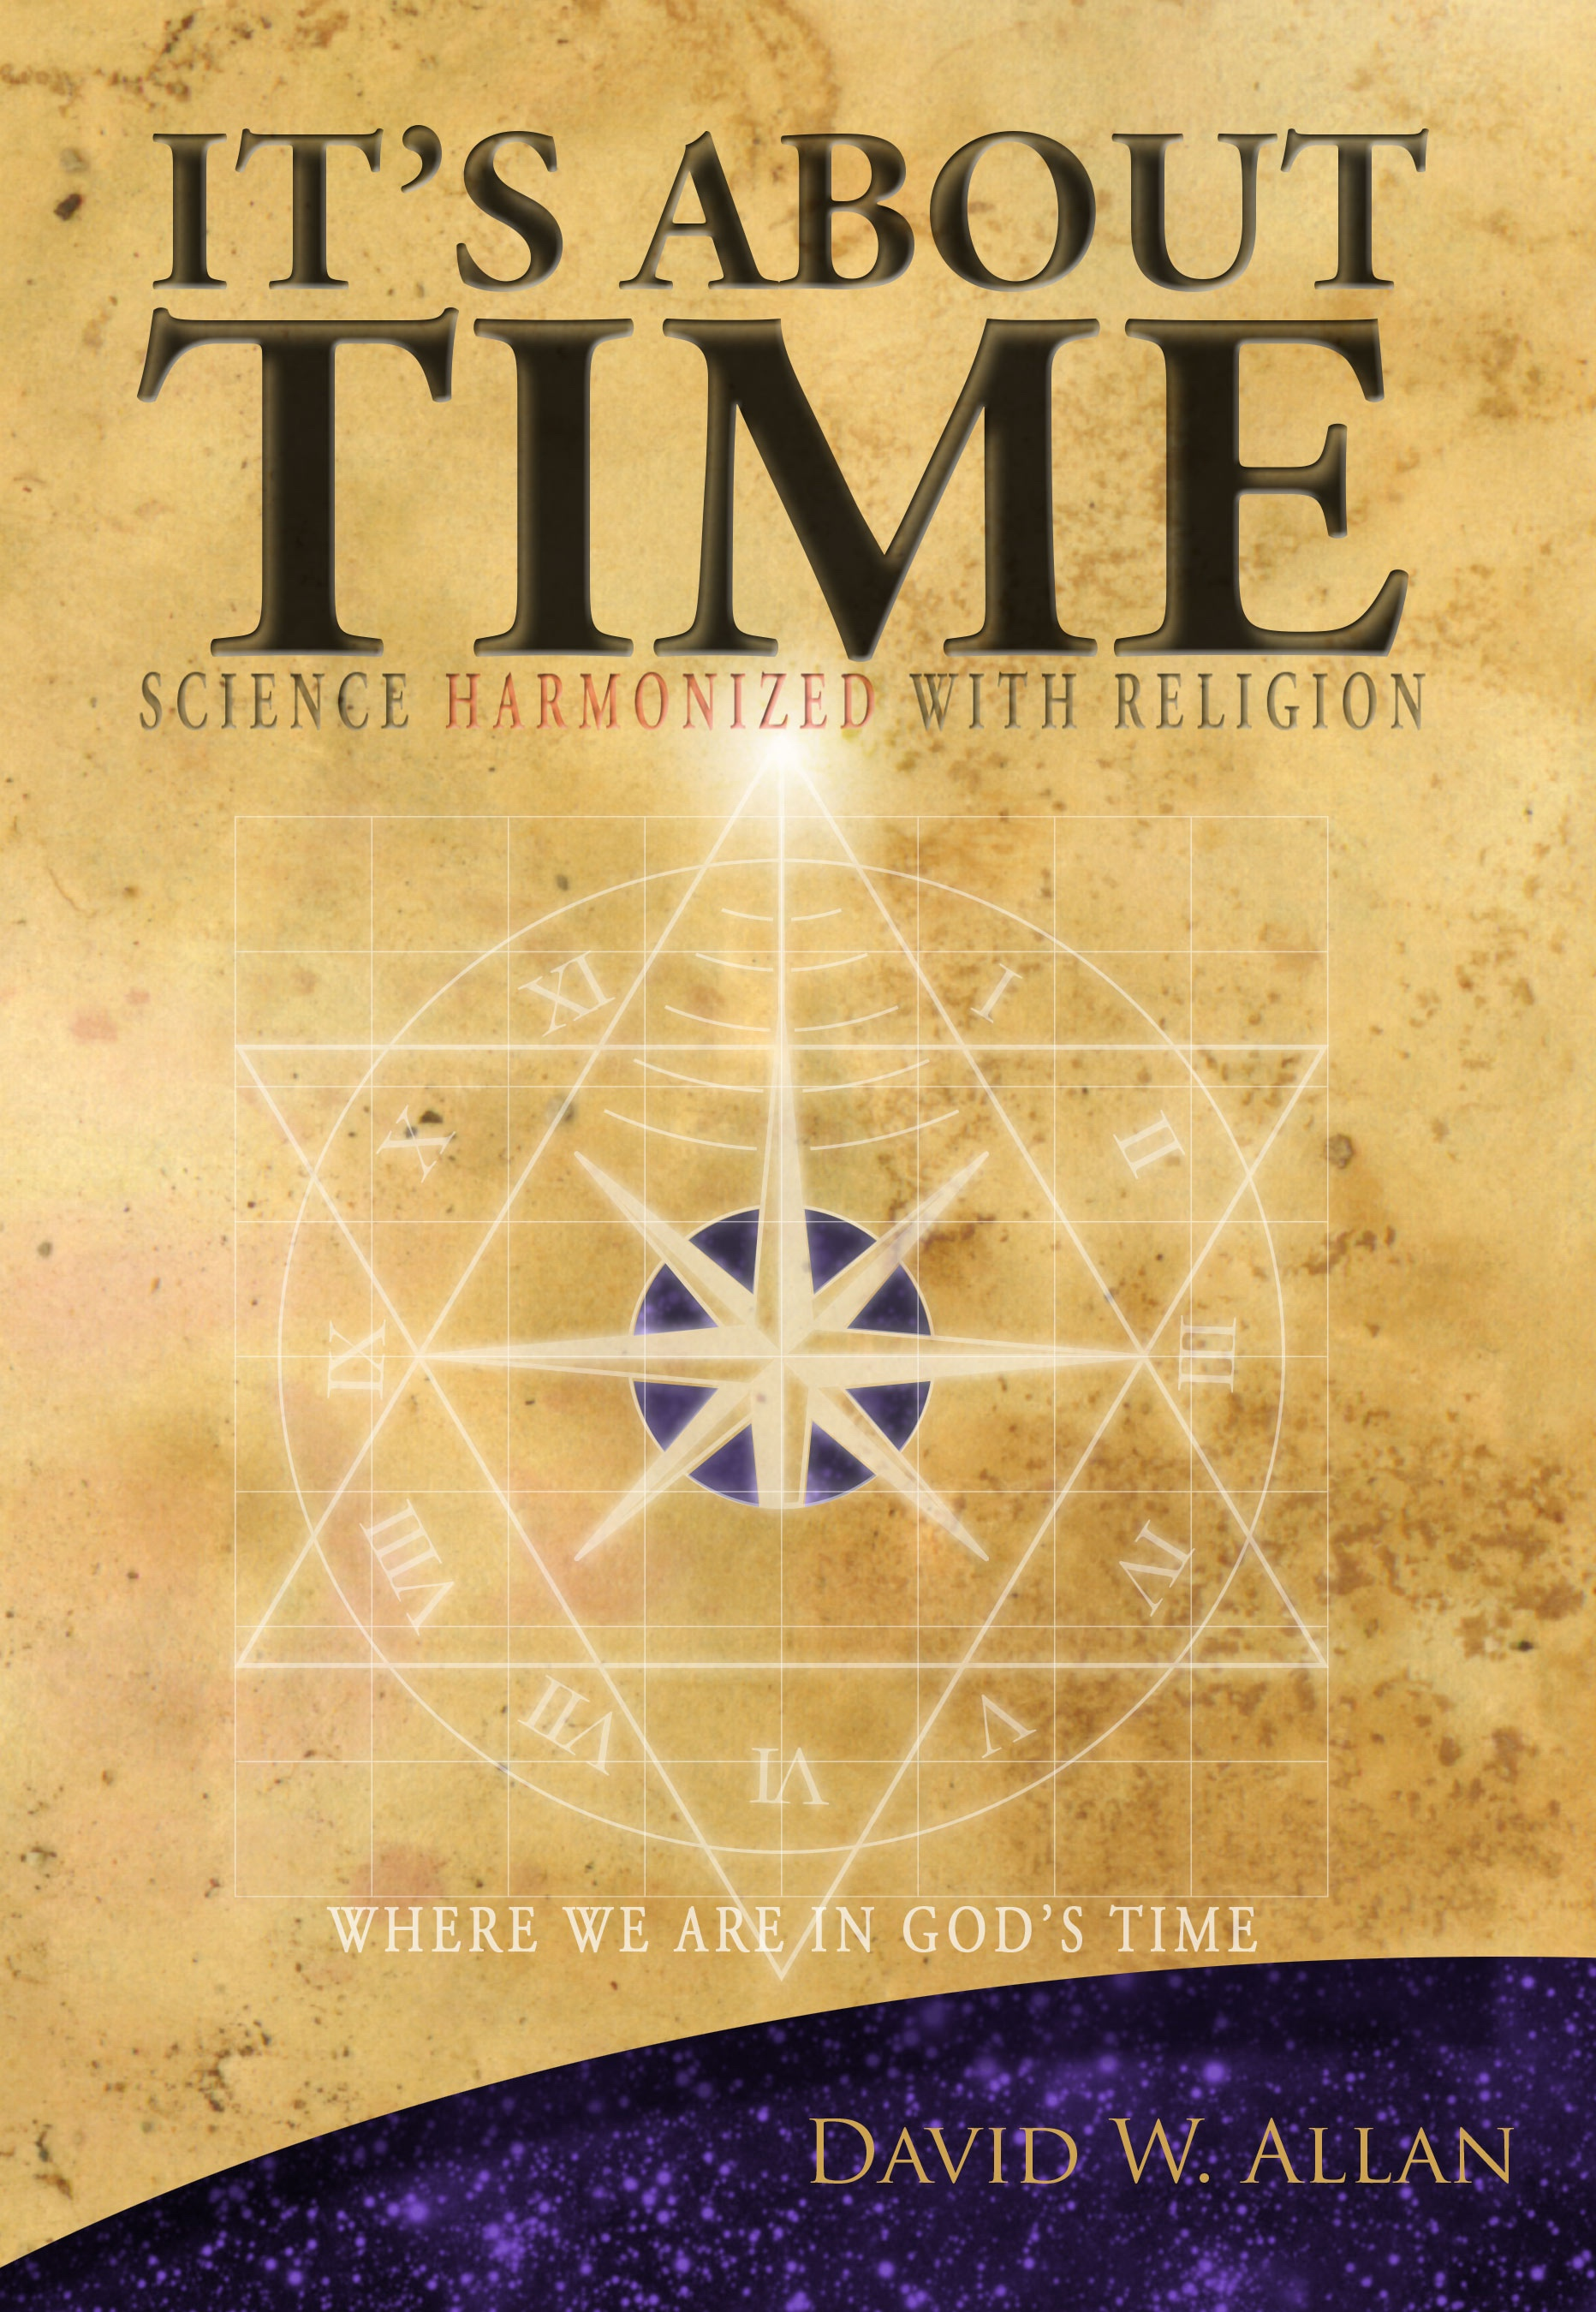 It's About Time - Science Harmonized with Religion: Where we are in God's Time, Allan, David W.